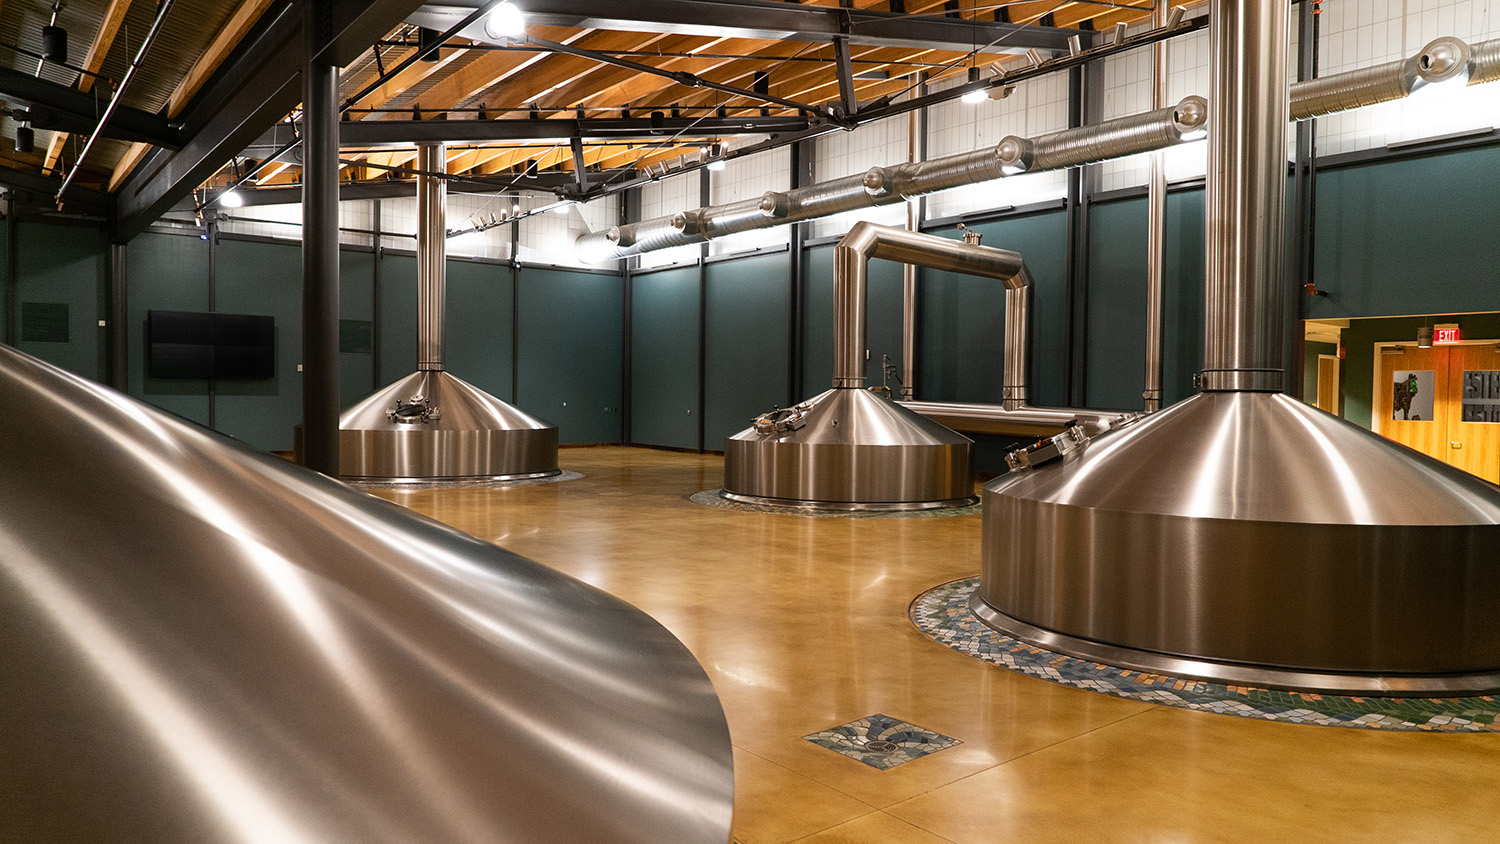 Steel tanks inside New Belgium's brewery in Asheville, NC